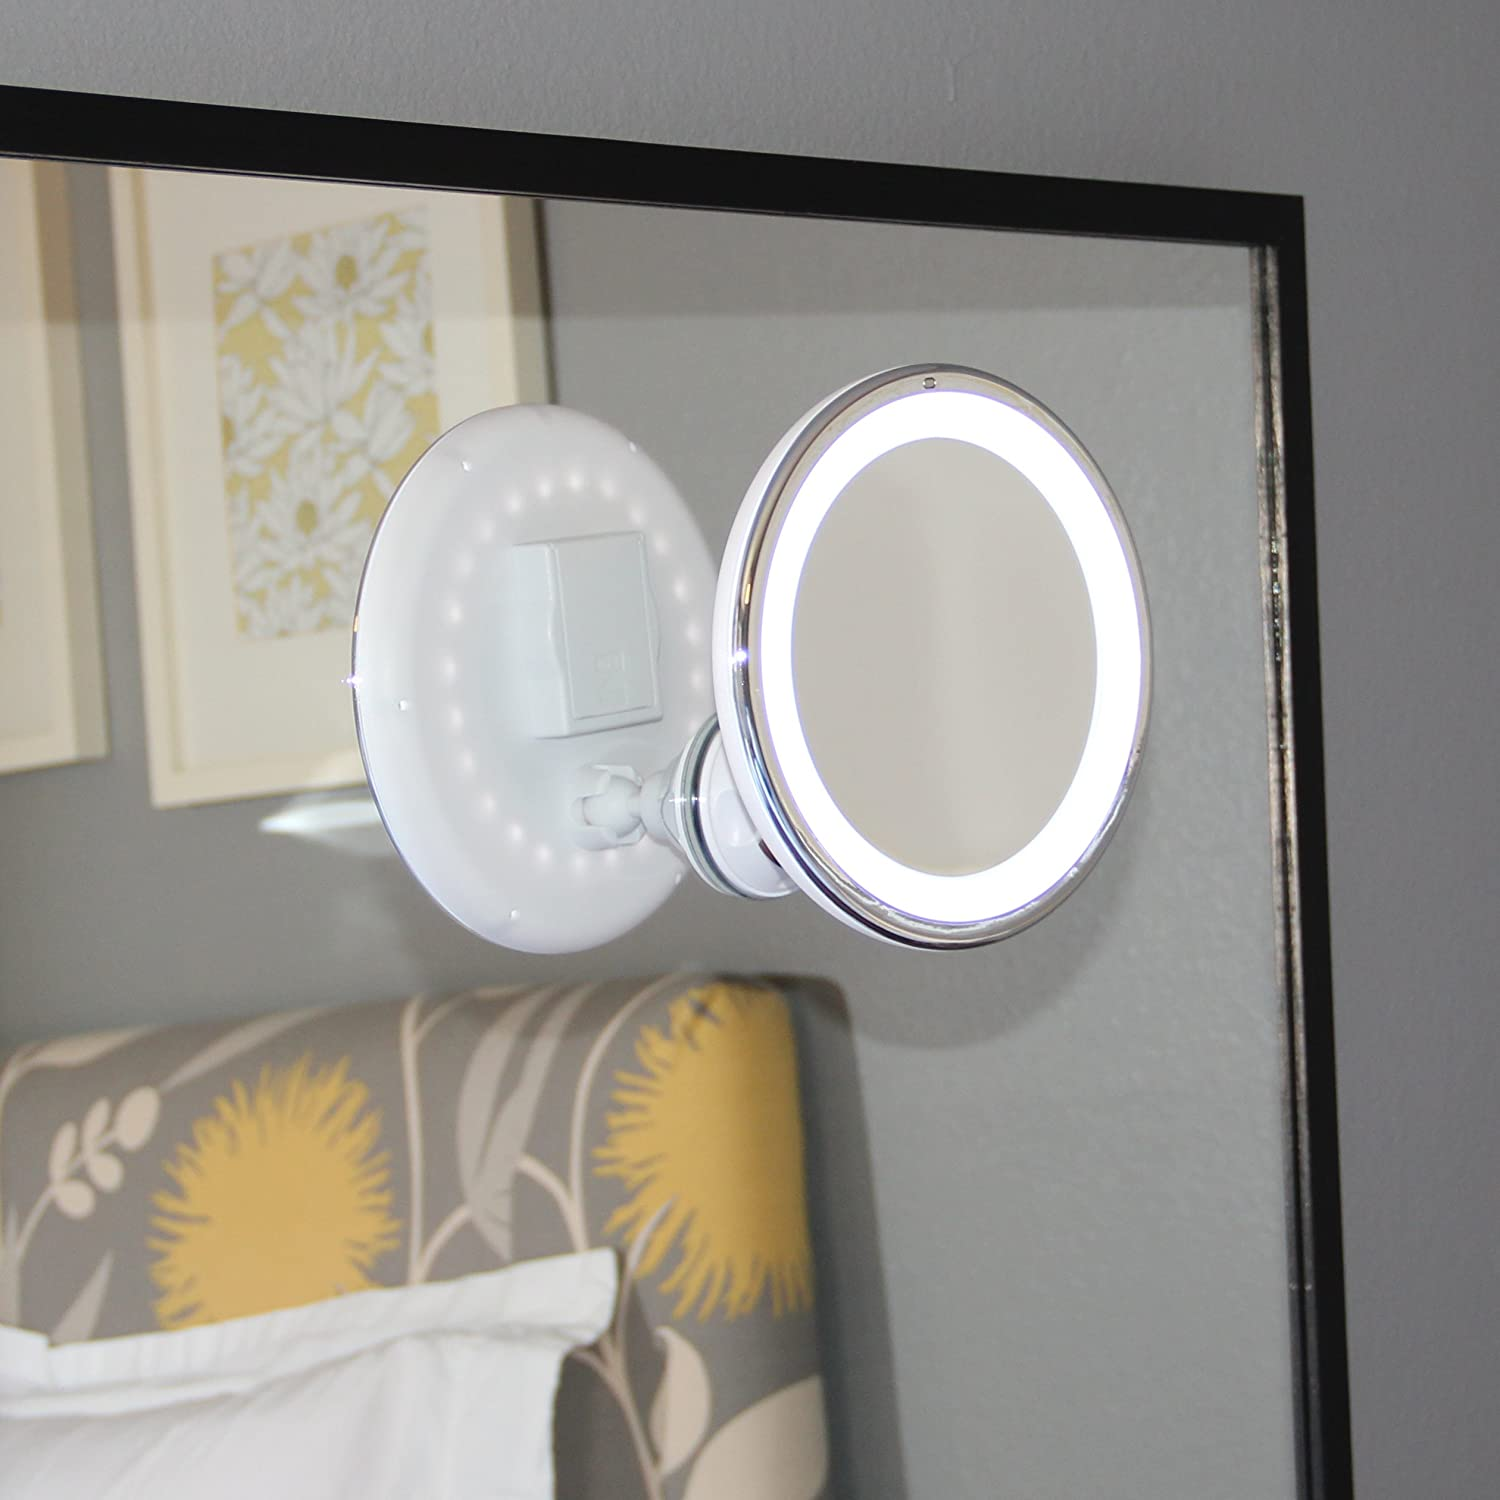 led amazon hollywood wonderful and for solid bulbs lights lighting xl mirror vanit diy unique with wall furniture light canada inspiring bedroom australia ebay vanity makeup